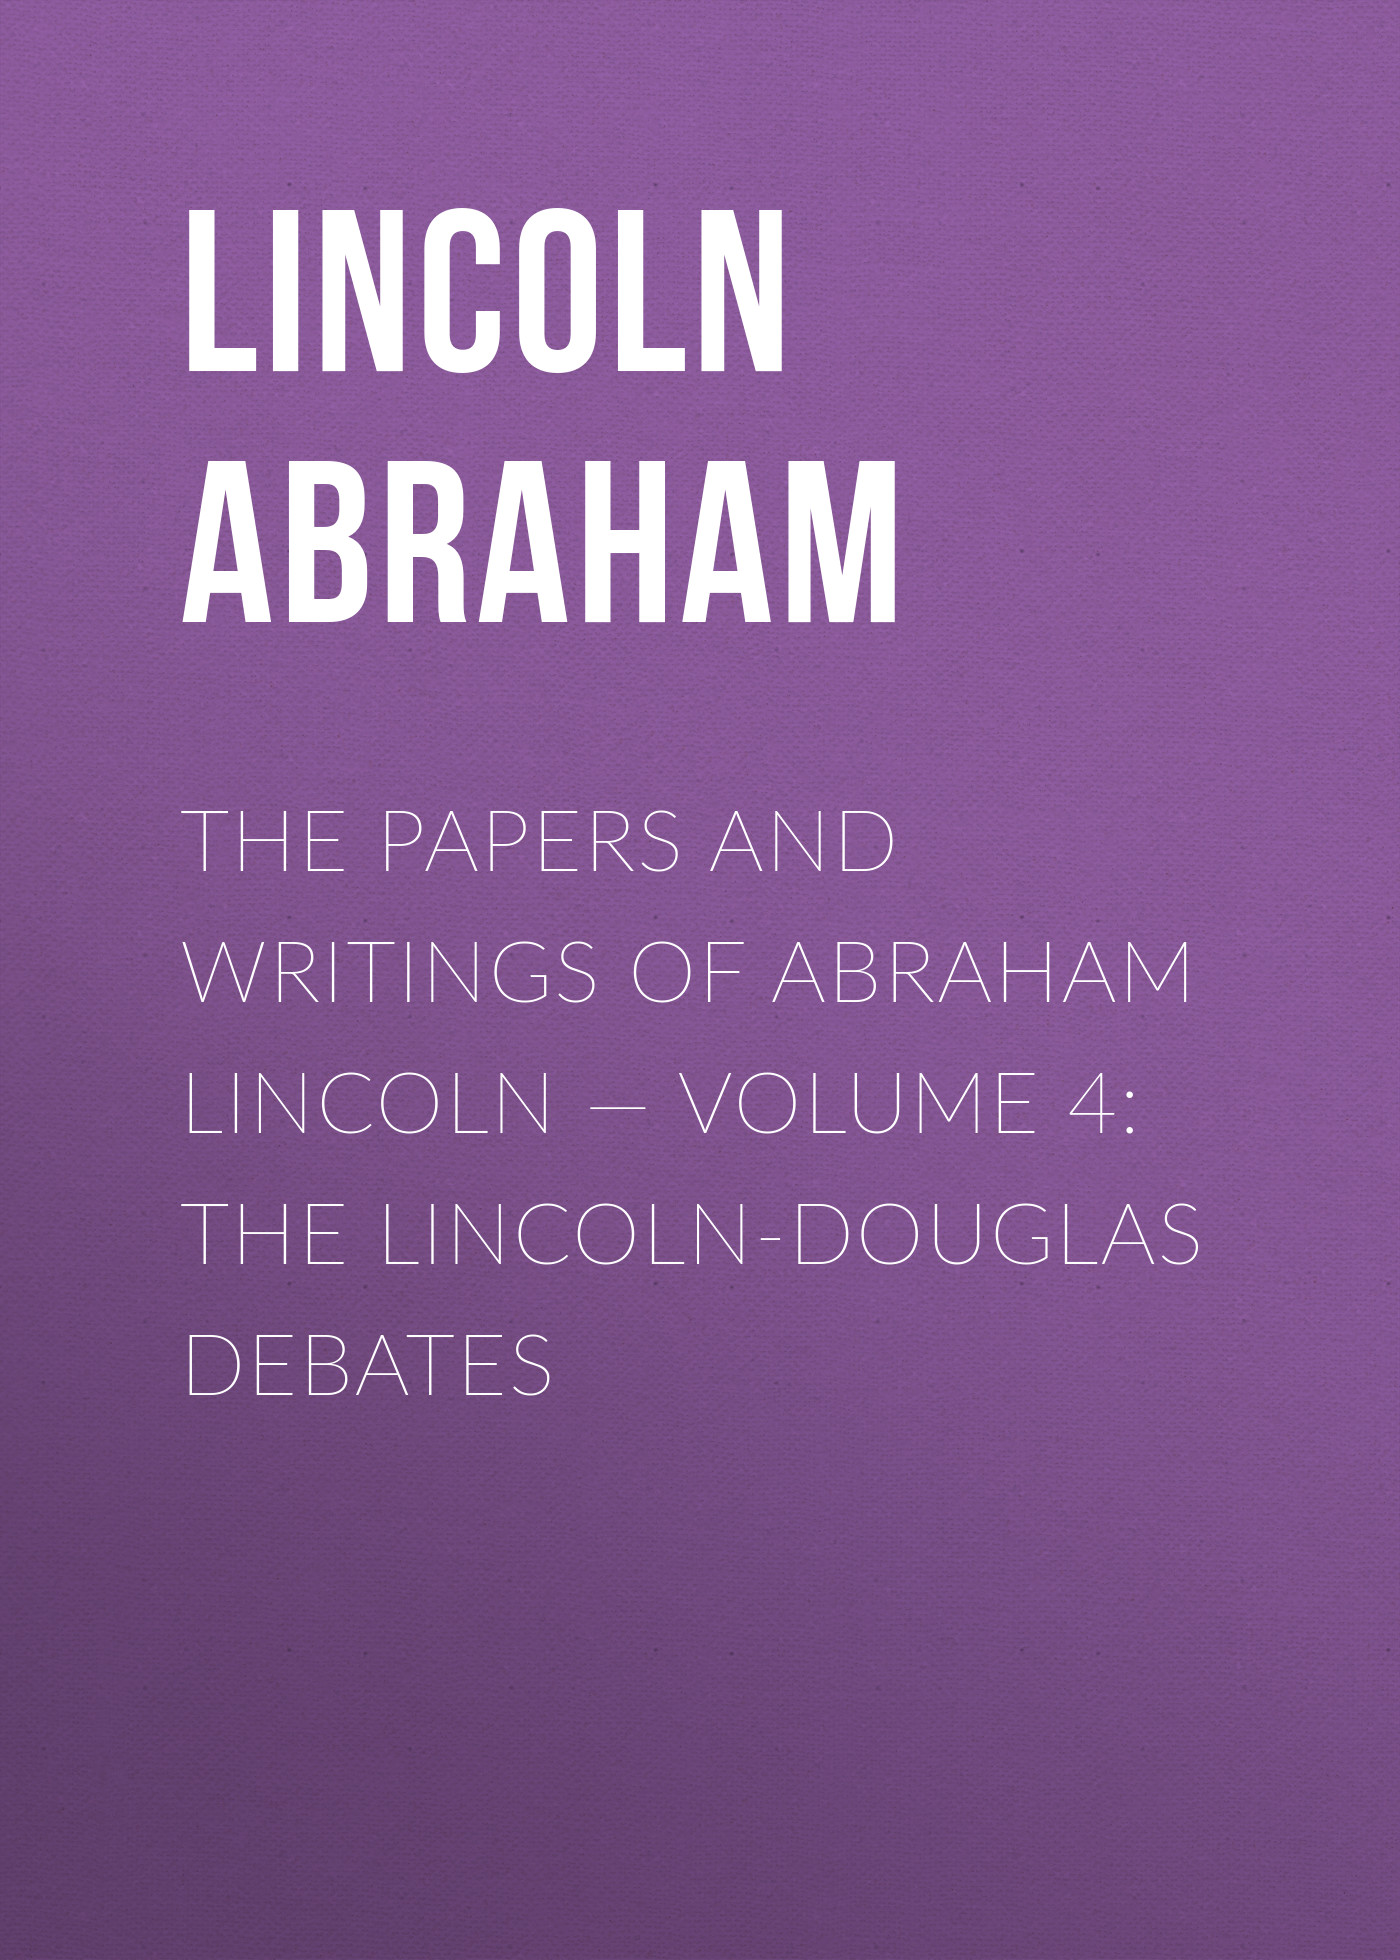 цены Lincoln Abraham The Papers And Writings Of Abraham Lincoln — Volume 4: The Lincoln-Douglas Debates